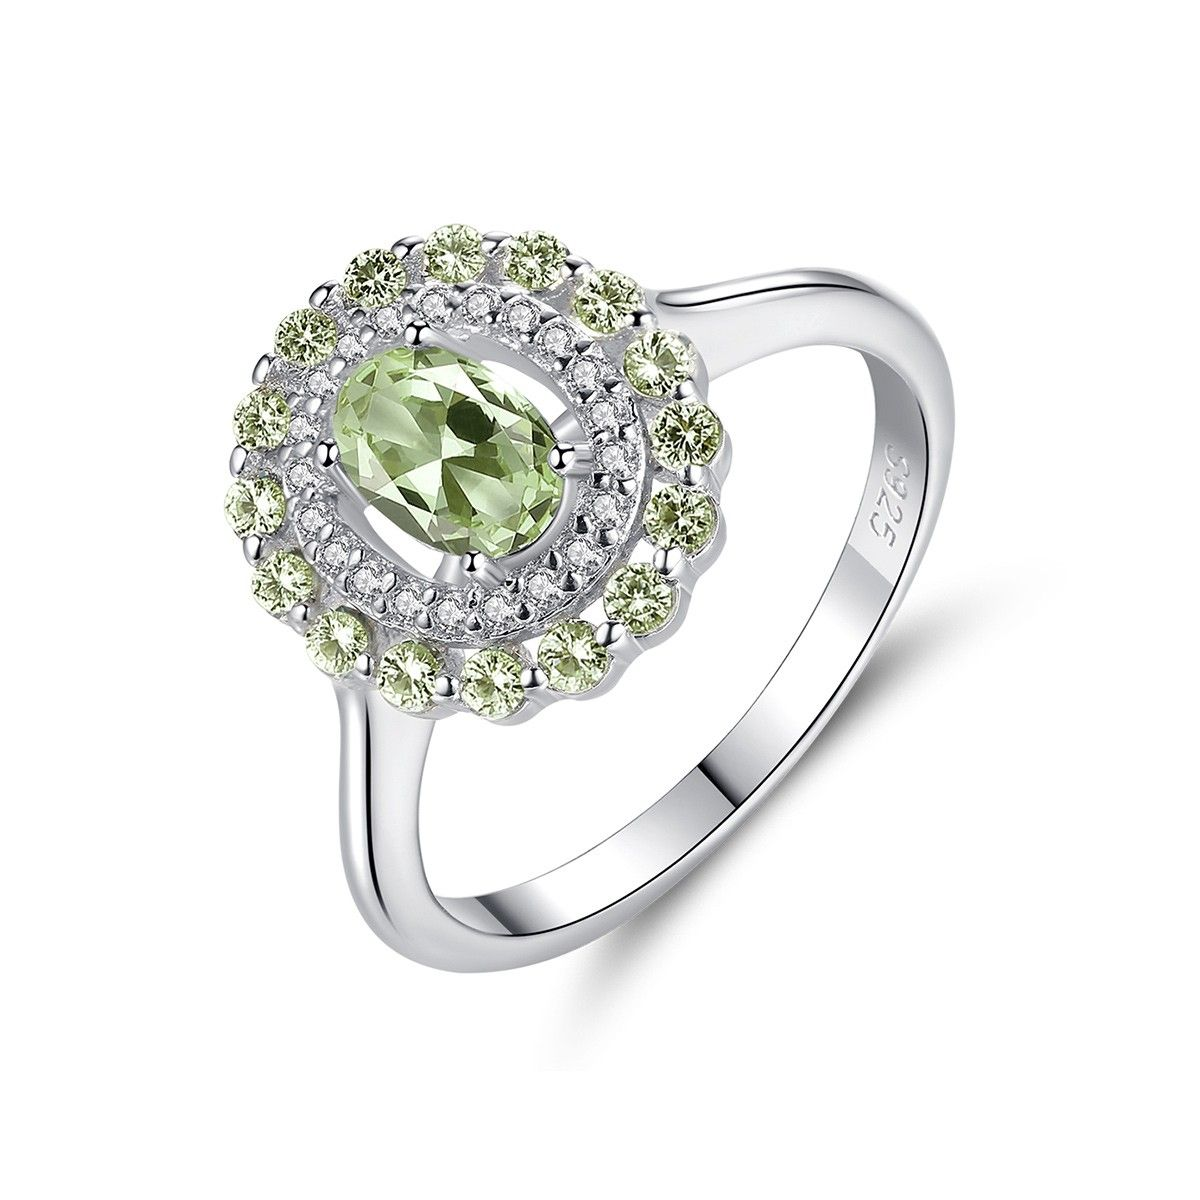 Green Amethyst Ring Vintage Halo Engagement Rings